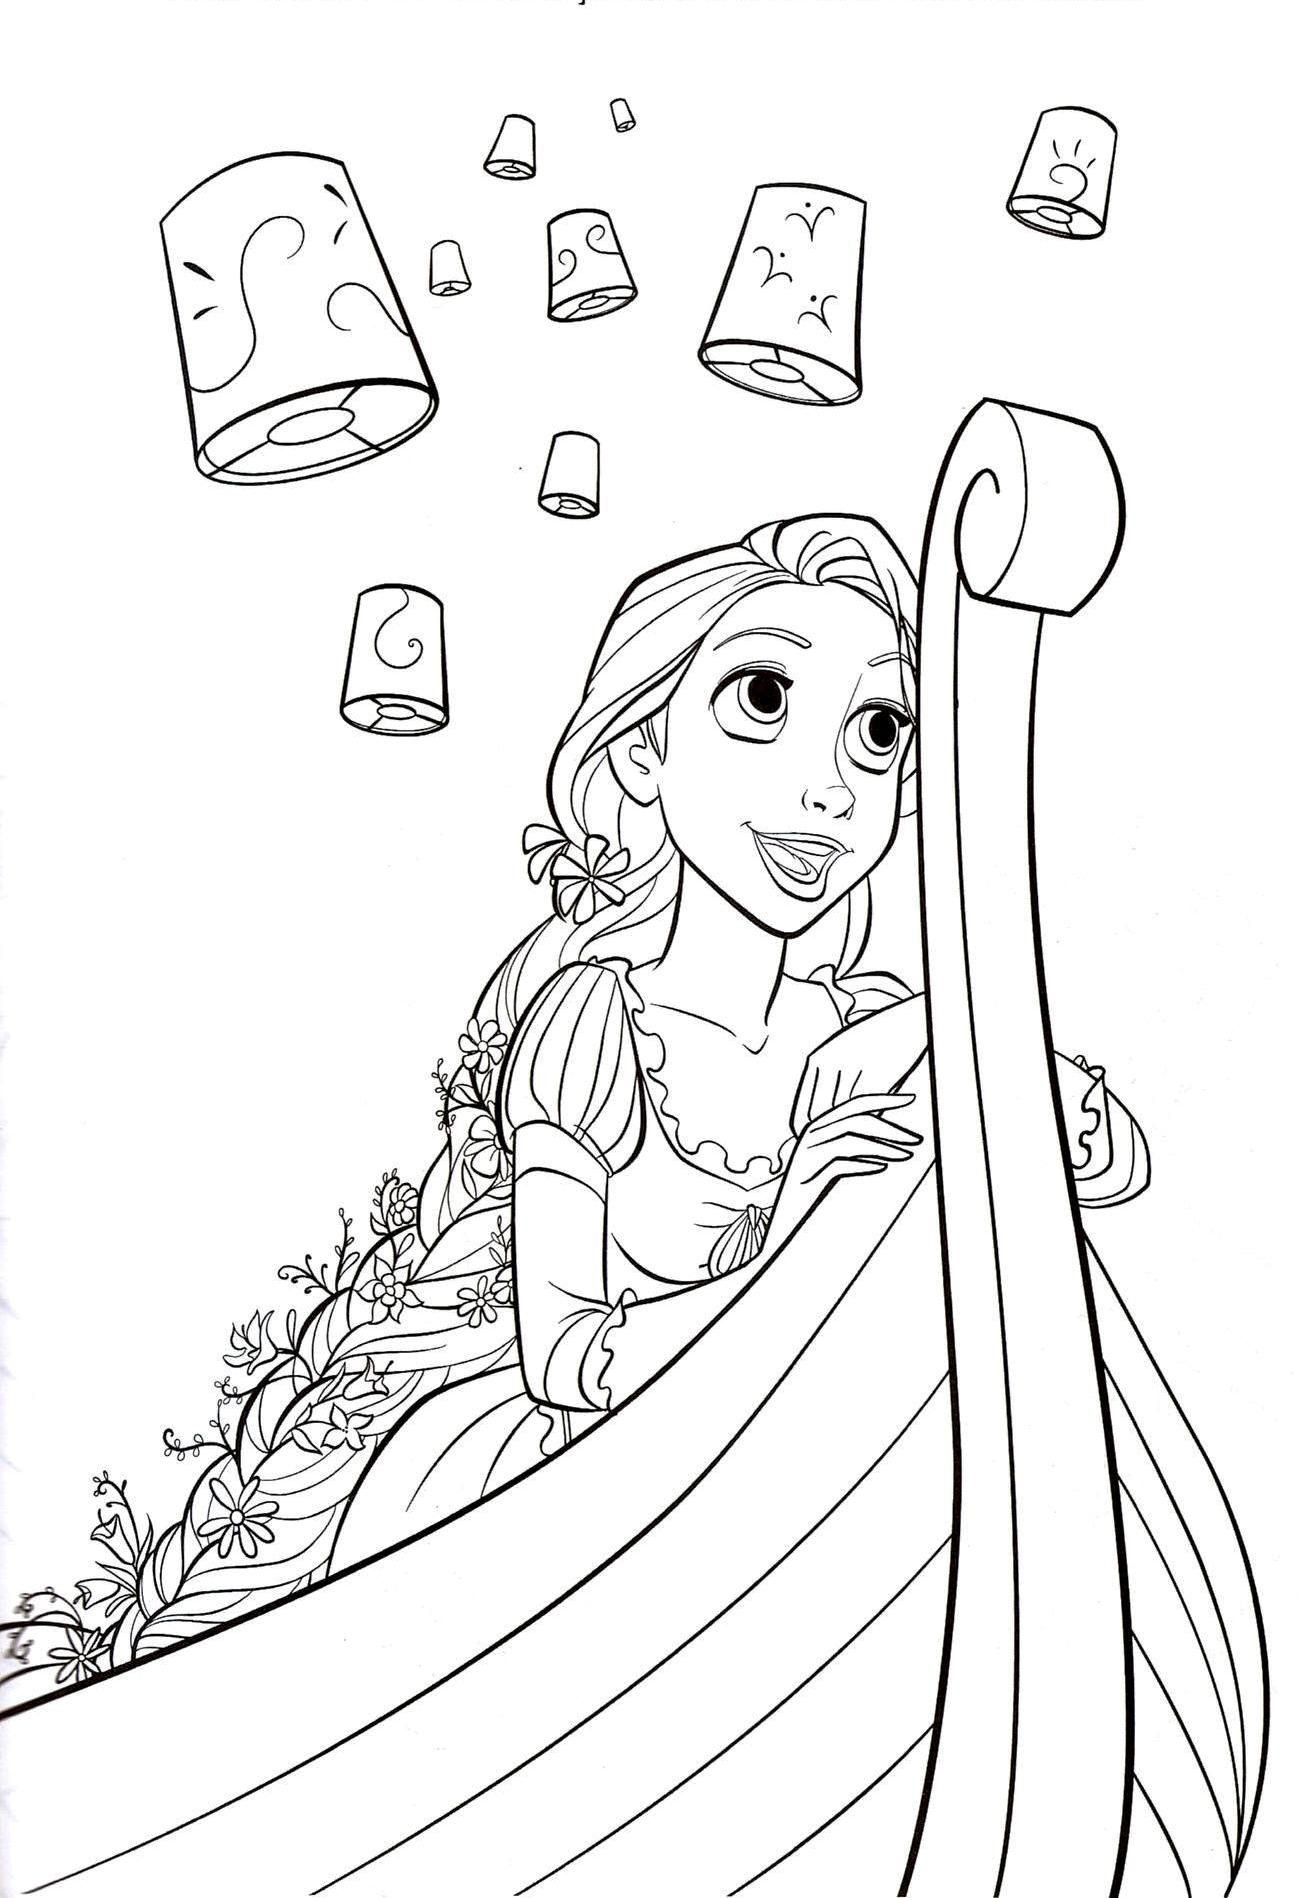 Disney princess birthday coloring pages - Nautical Coloring Pages To Download And Print For Free